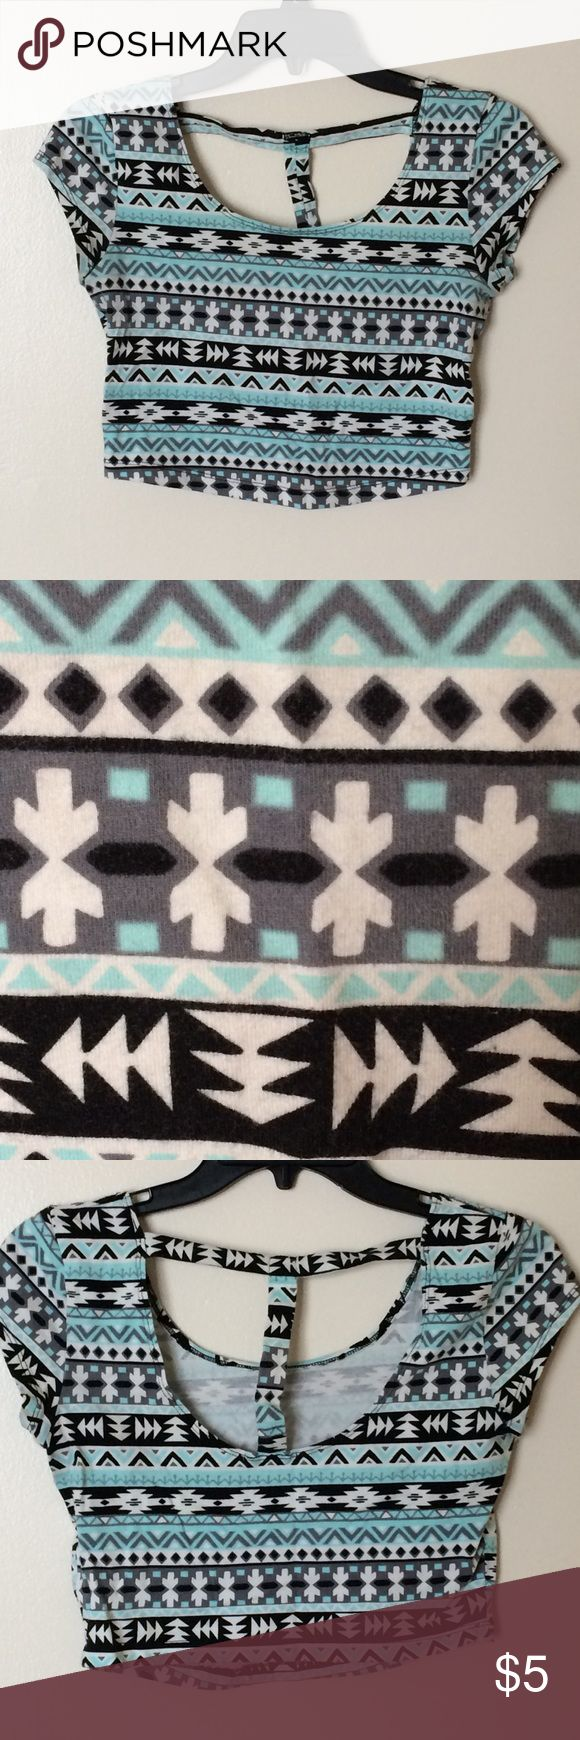 Charlotte Russe t-back Aztec crop top This turquoise, grey, black, and white shirt-sleeved Aztec-print crop top is made by Charlotte Russe. It features an open back with a t-strap. It is in excellent used condition and comes from a smoke free, pet free home. Charlotte Russe Tops Crop Tops